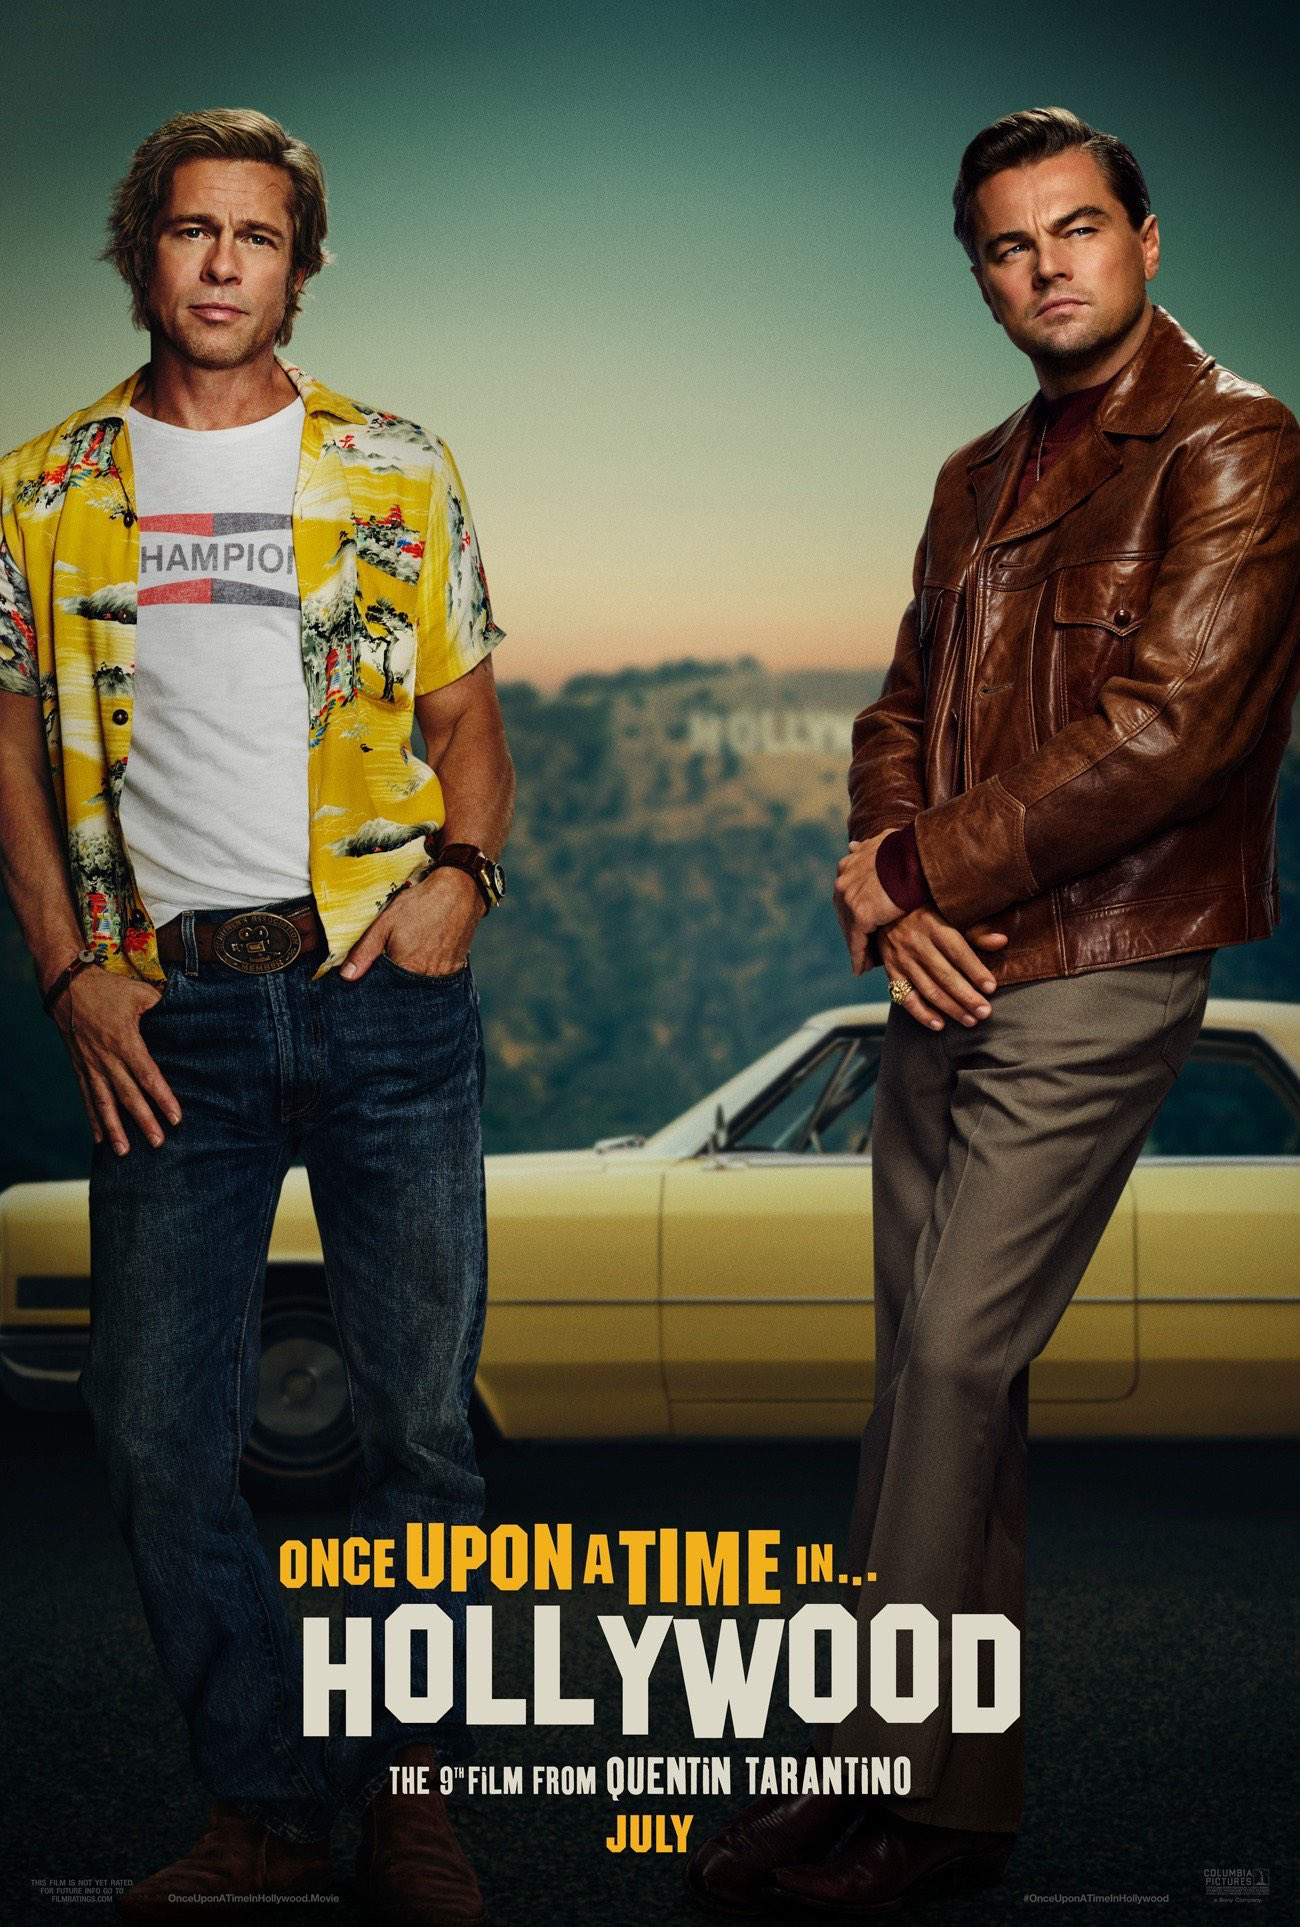 Once Upon a Time in Hollywood (2019) | Leonardo DiCaprio, Brad Pitt